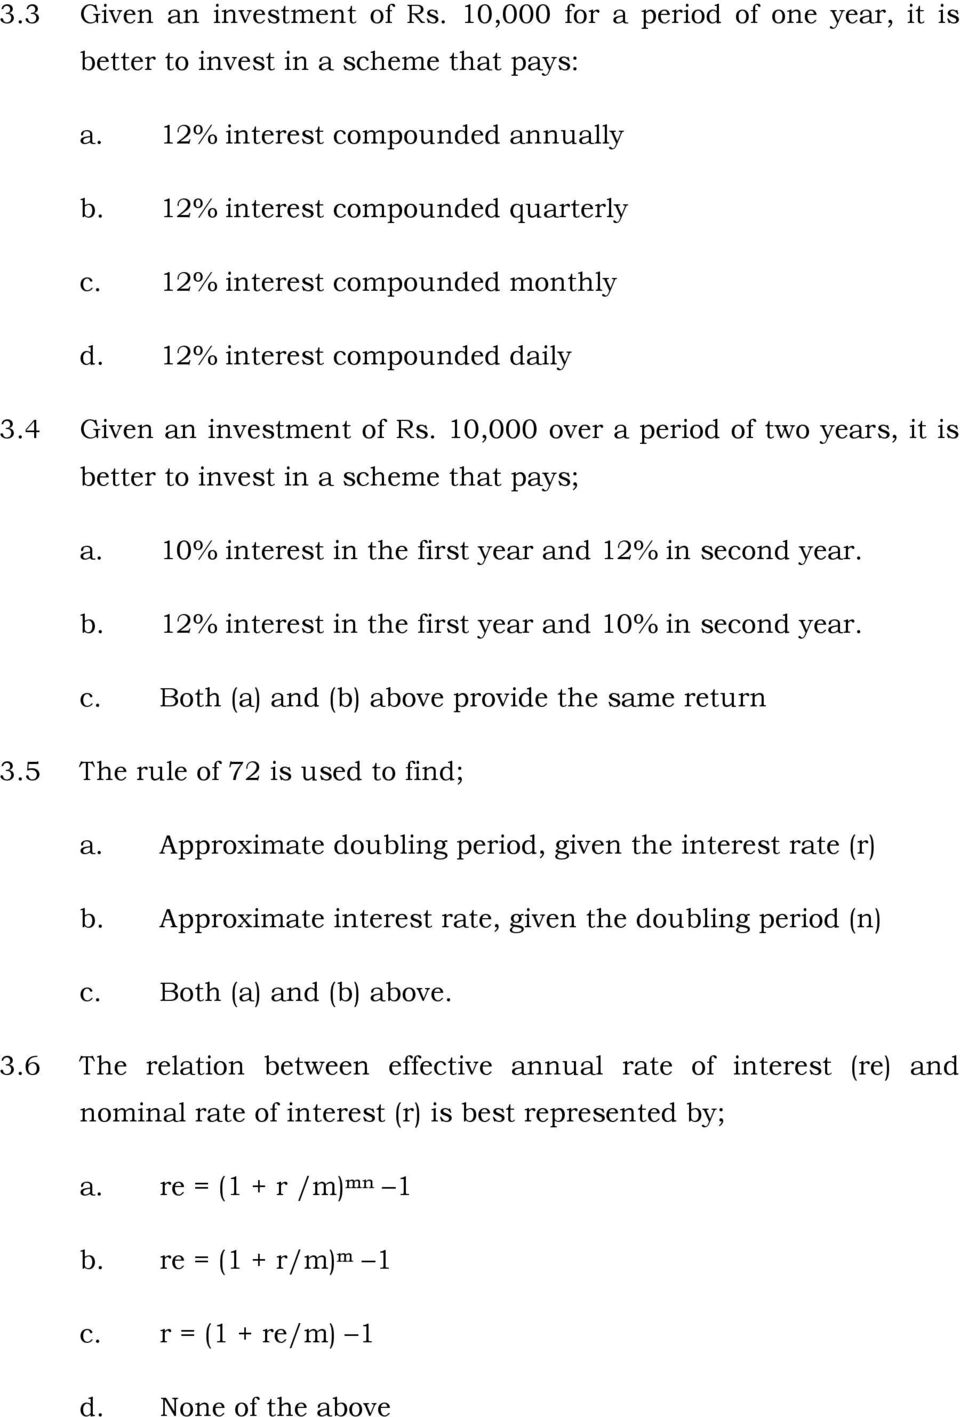 10% interest in the first year and 12% in second year. b. 12% interest in the first year and 10% in second year. c. Both (a) and (b) above provide the same return 3.